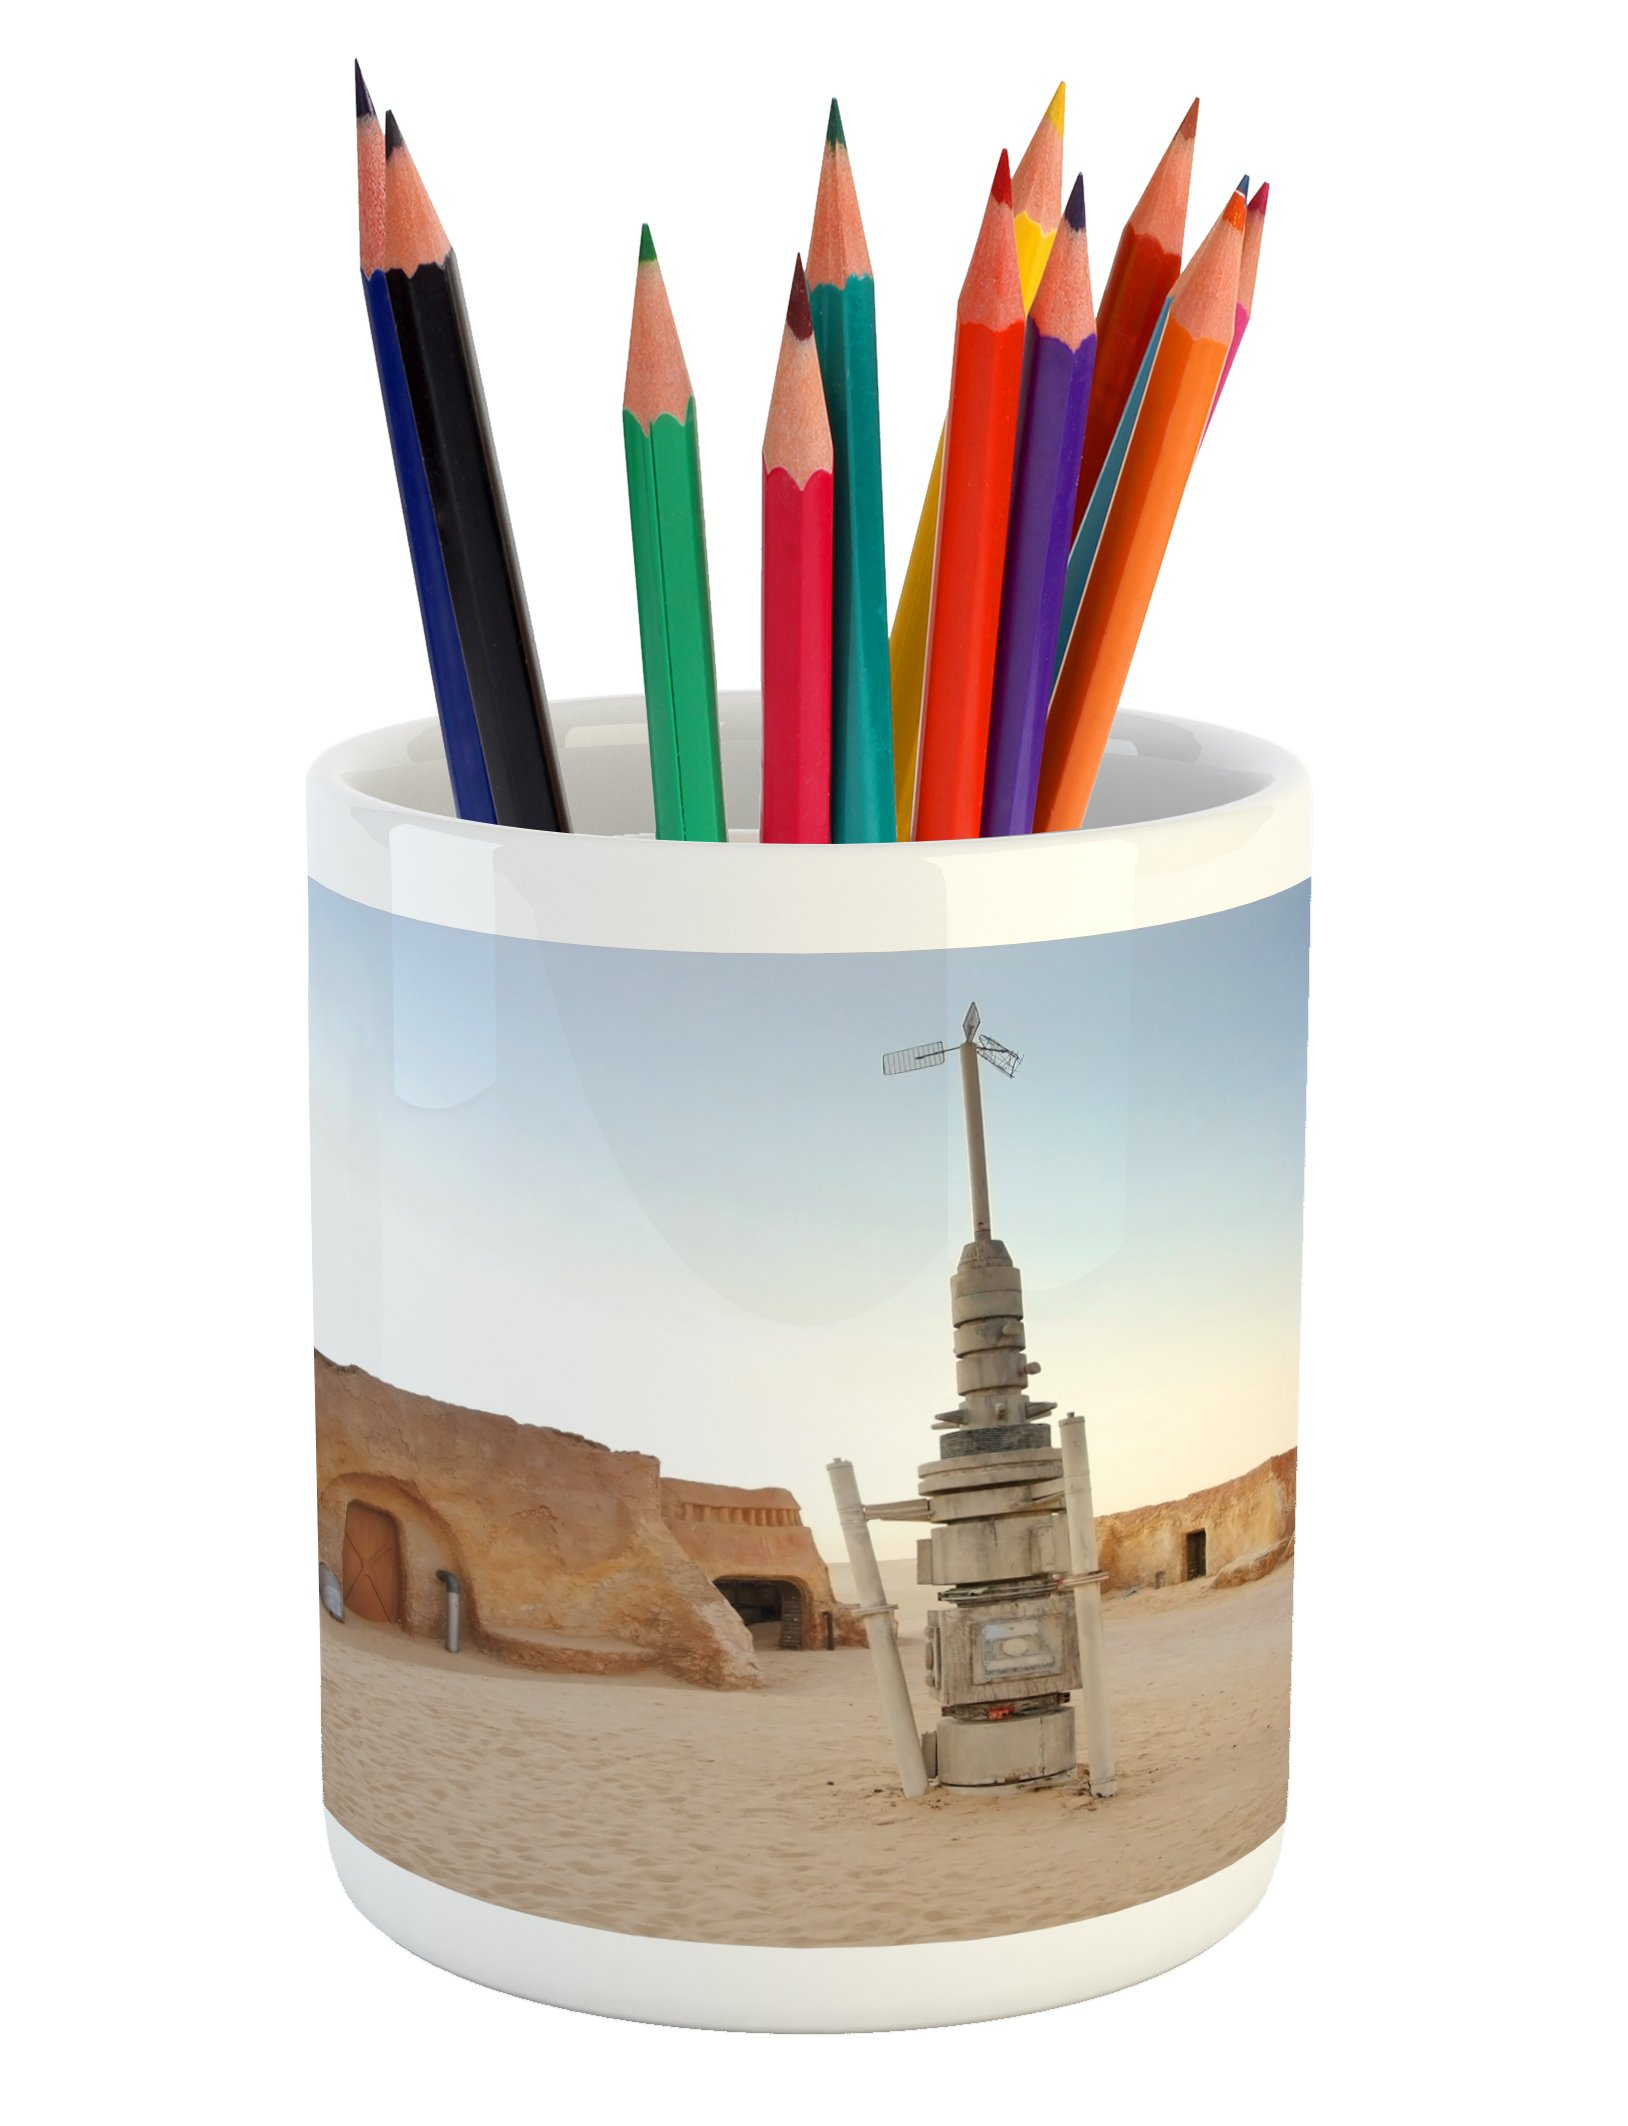 Ambesonne Galaxy Pencil Pen Holder, Image of Fantasy Movie Town of Fantasy Planet Out of Space Setting Theme Landscape, Printed Ceramic Pencil Pen Holder for Desk Office Accessory, Brown Blue